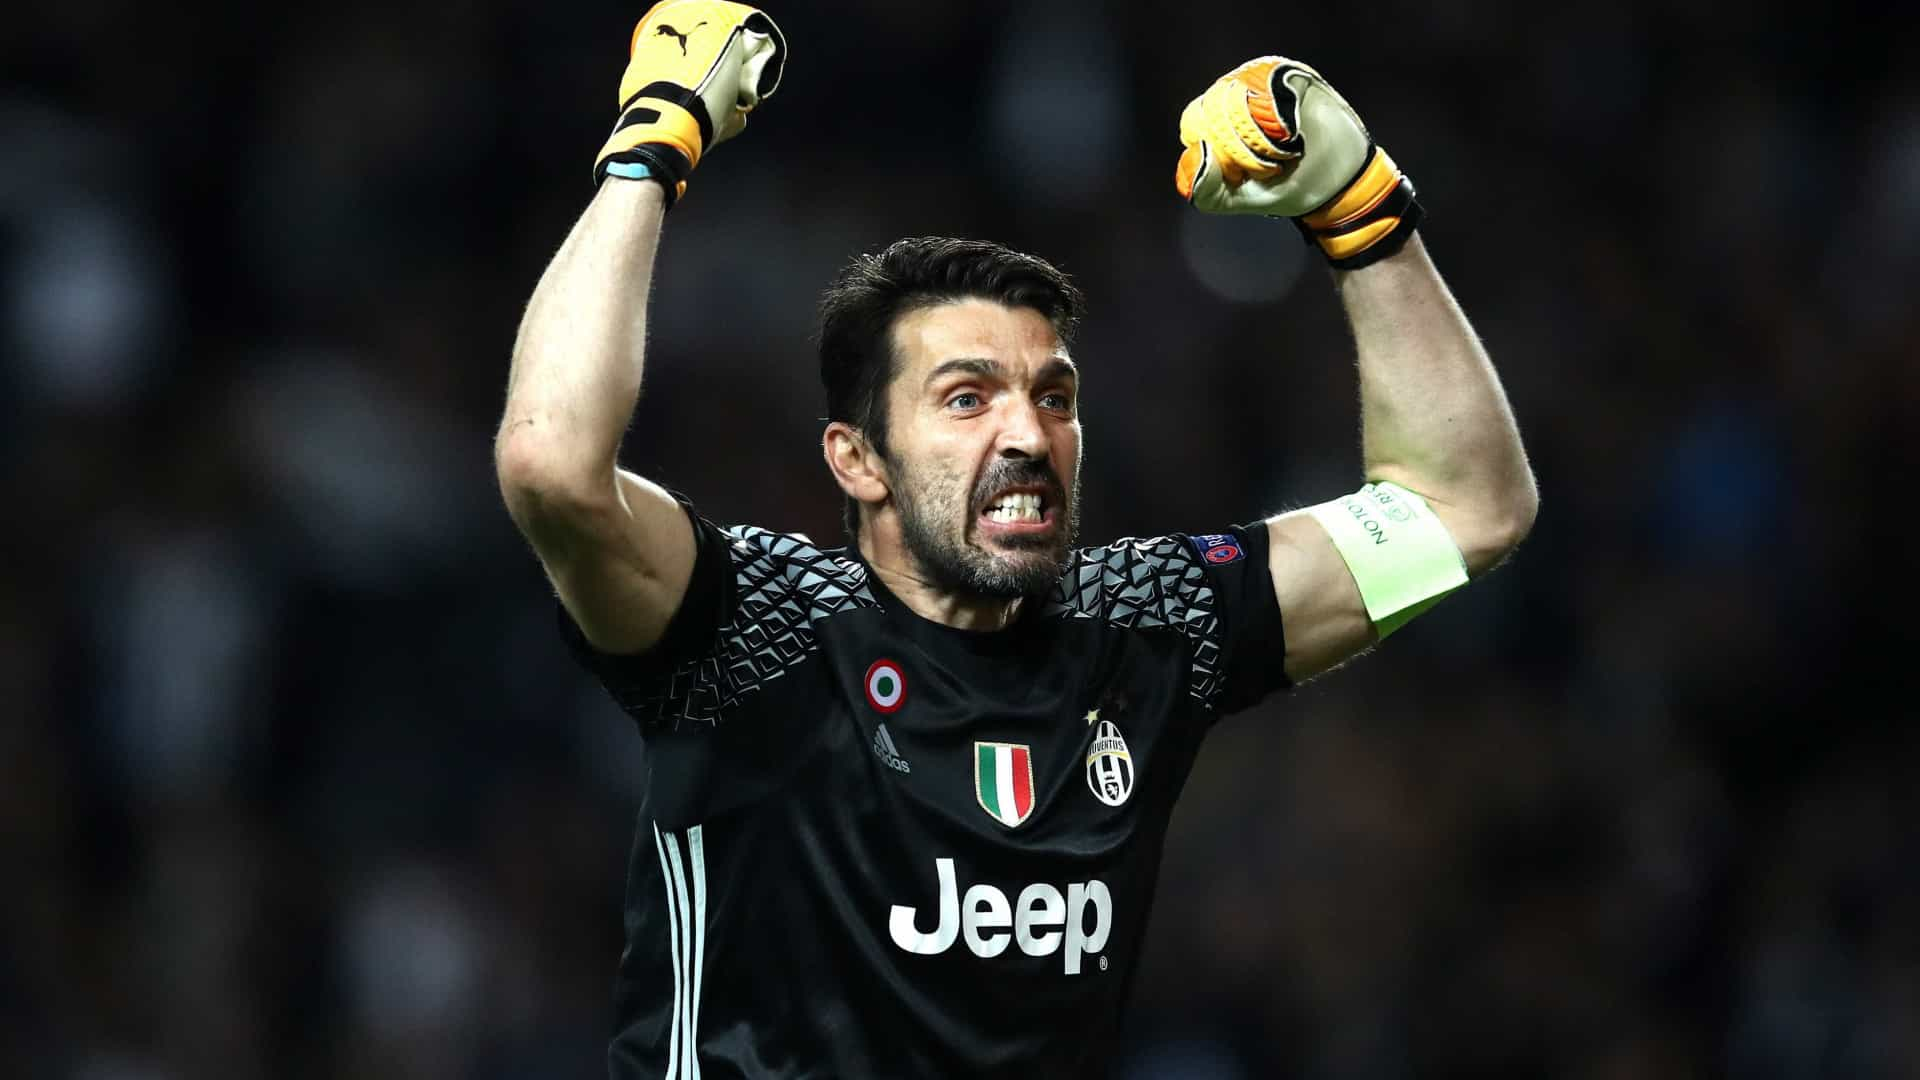 O (louco) plano do Boca Juniors e que envolve Gianluigi Buffon